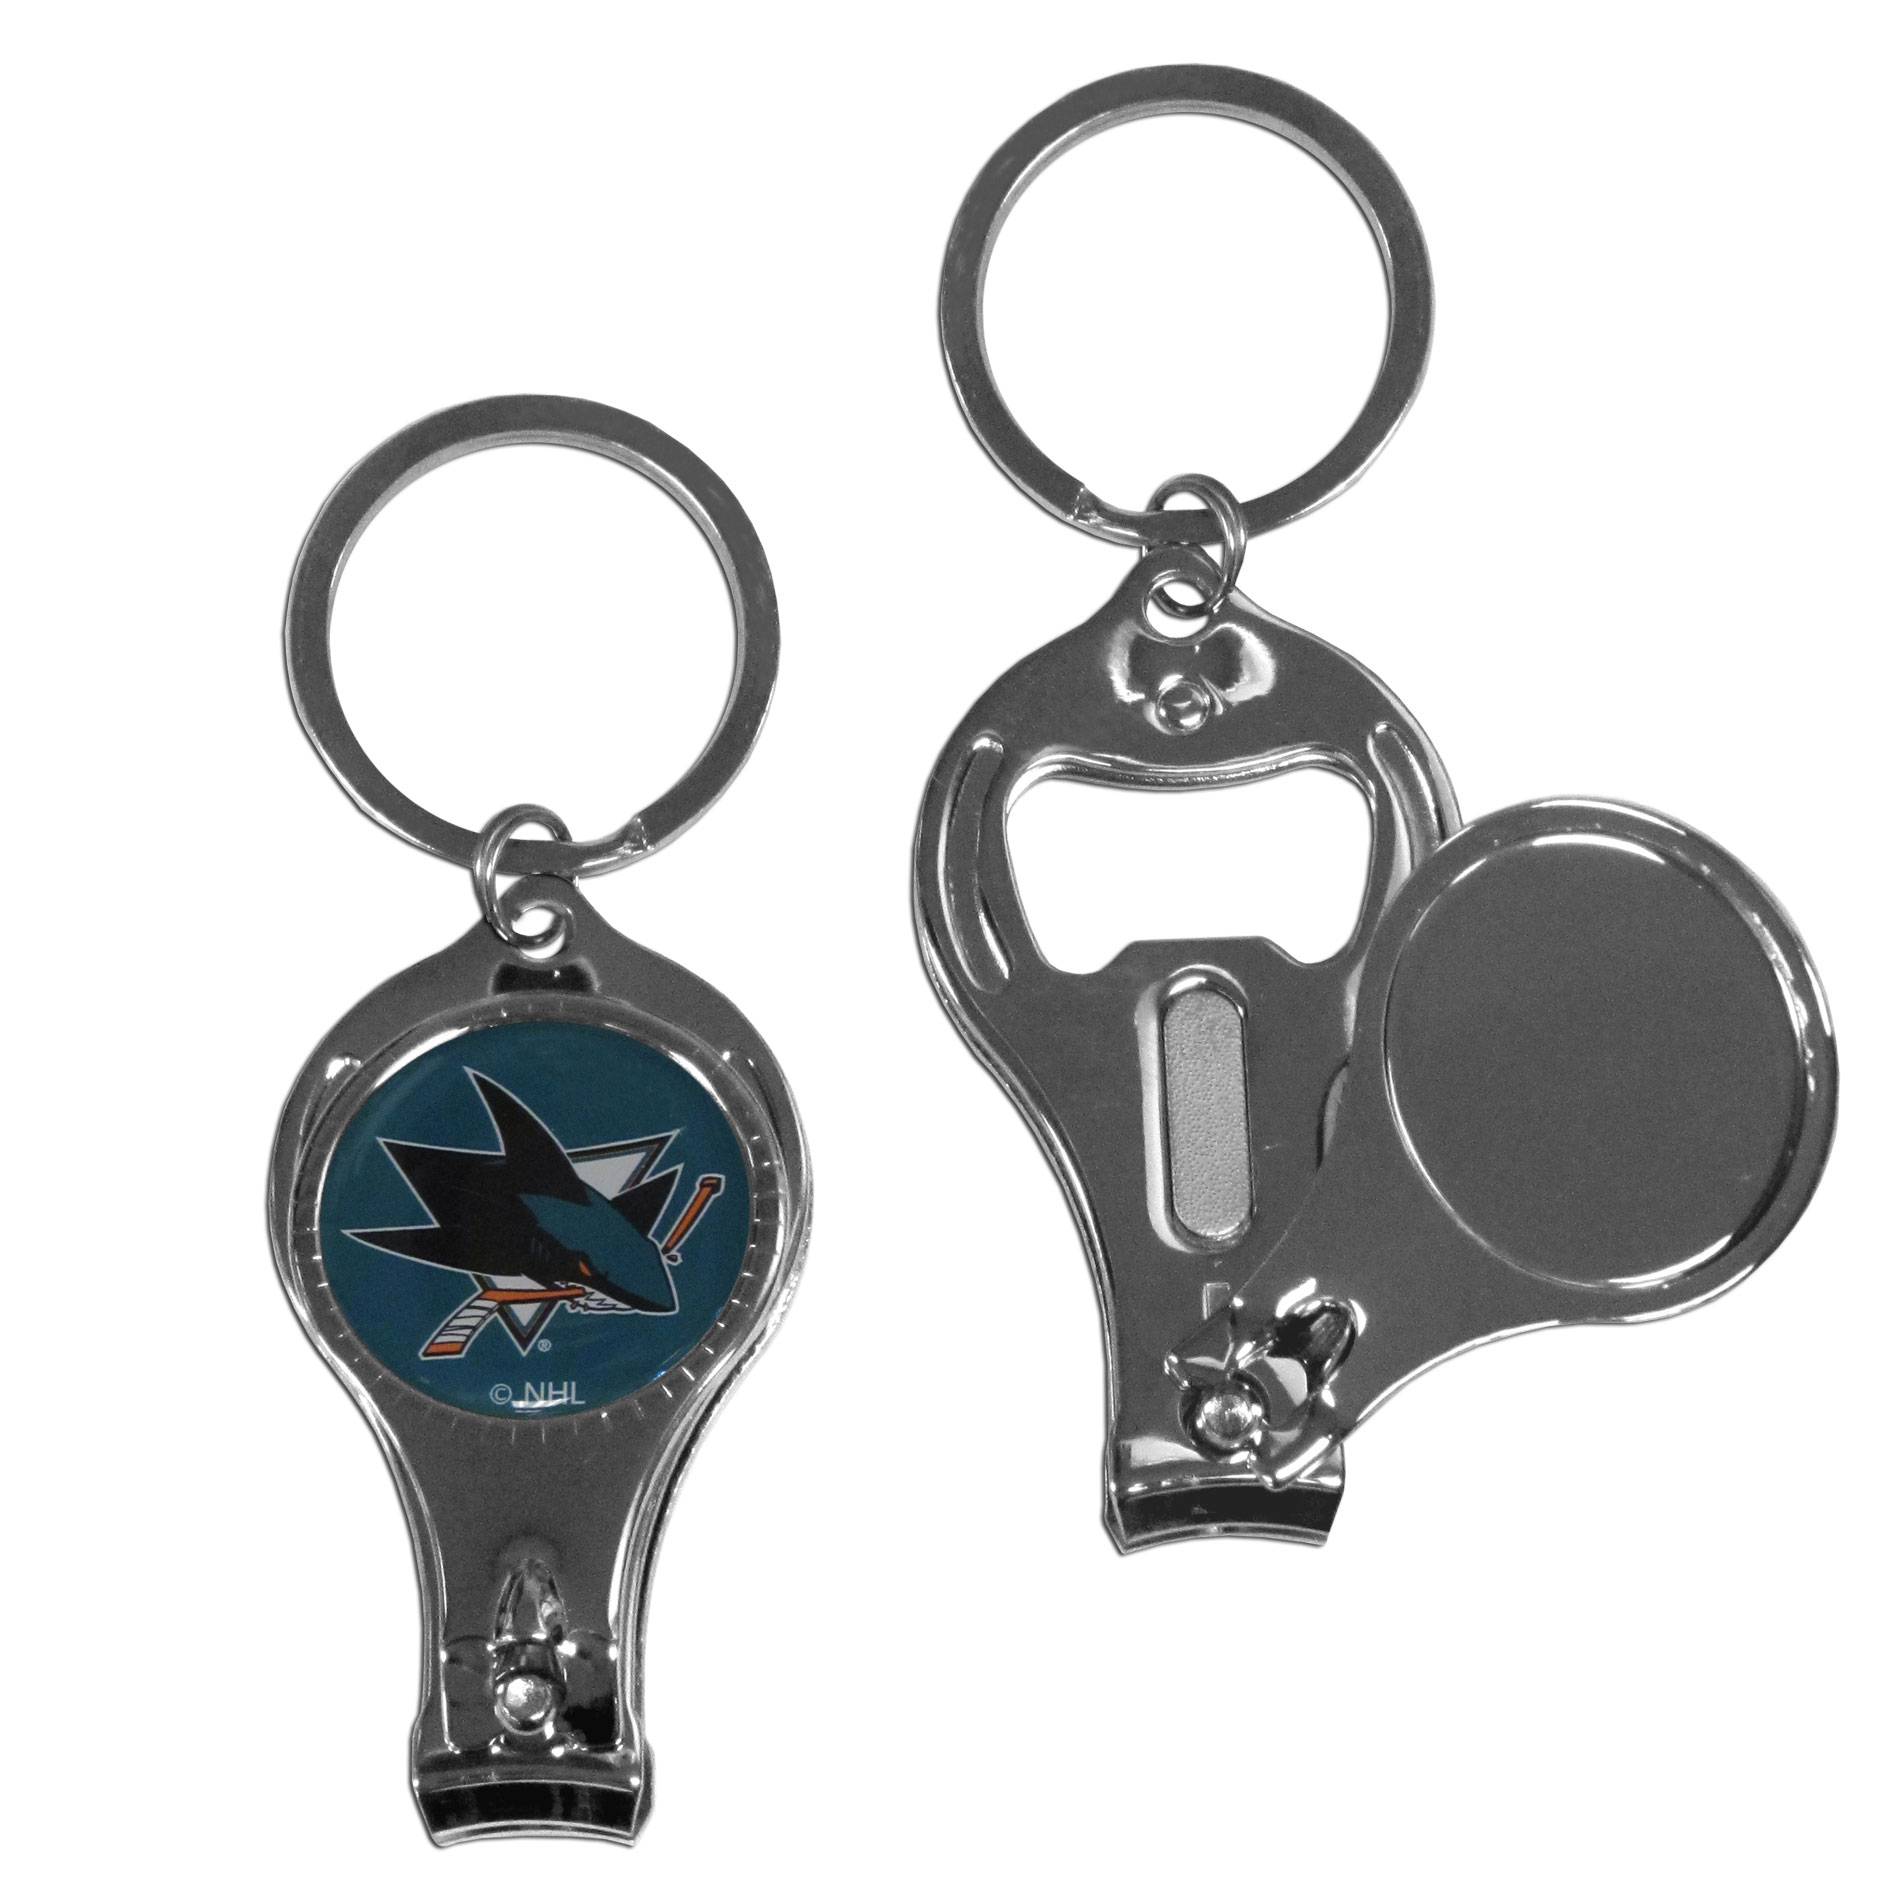 San Jose Sharks Nail Care Key Chain - This unique NHL San Jose Sharks Nail Care Key Chain has 3 great functions! The San Jose Sharks Nail Care Key Chain opens to become a nail clipper, when open you can access the nail file pad plus the San Jose Sharks key chain also has a bottle opener. This versatile San Jose Sharks Nail Care Key Chain features a San Jose Sharks domed logo. Thank you for visiting CrazedOutSports